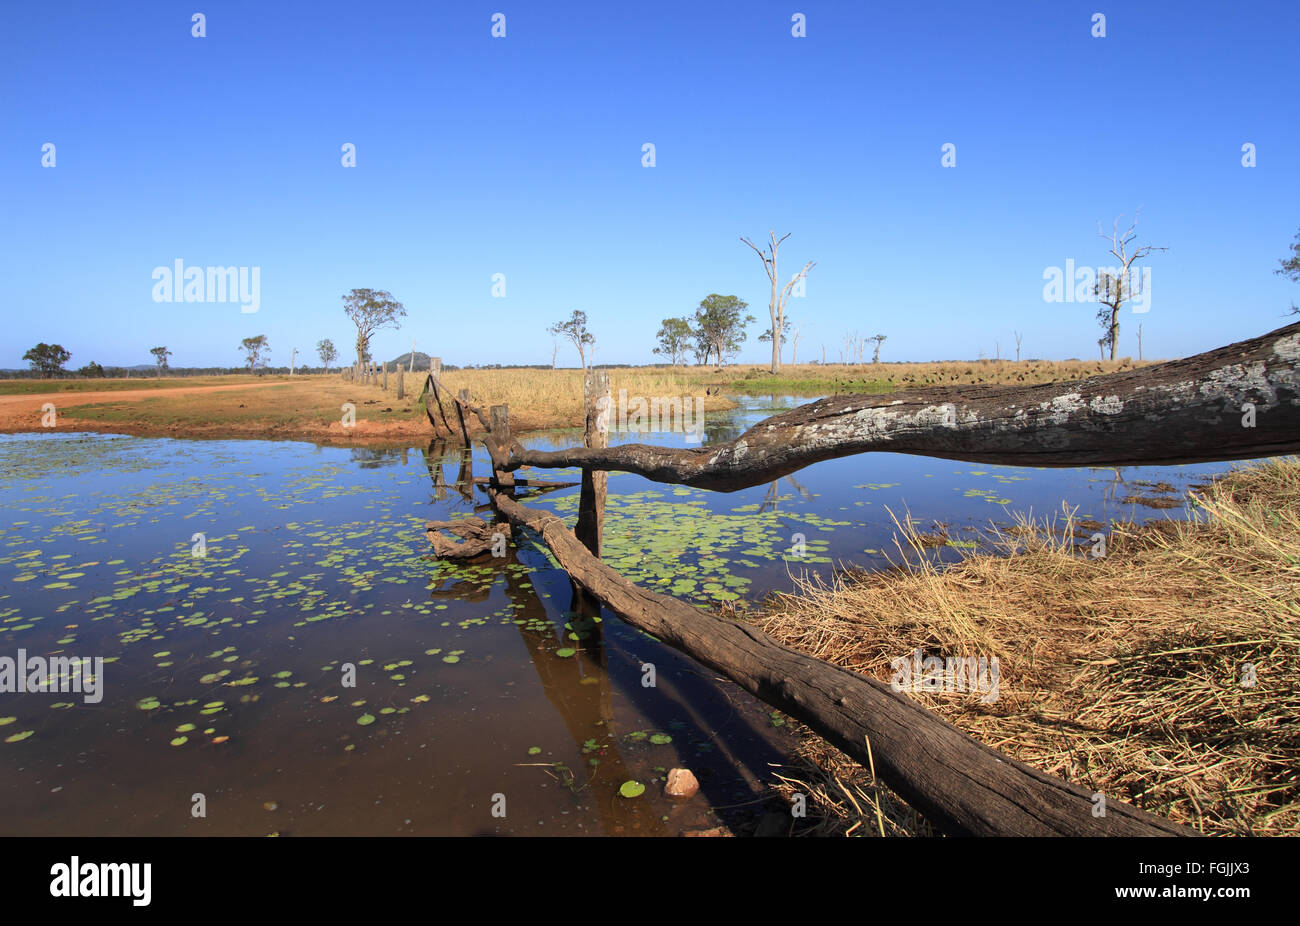 Outback Australian billabong water hole with blue sky and red earth. - Stock Image